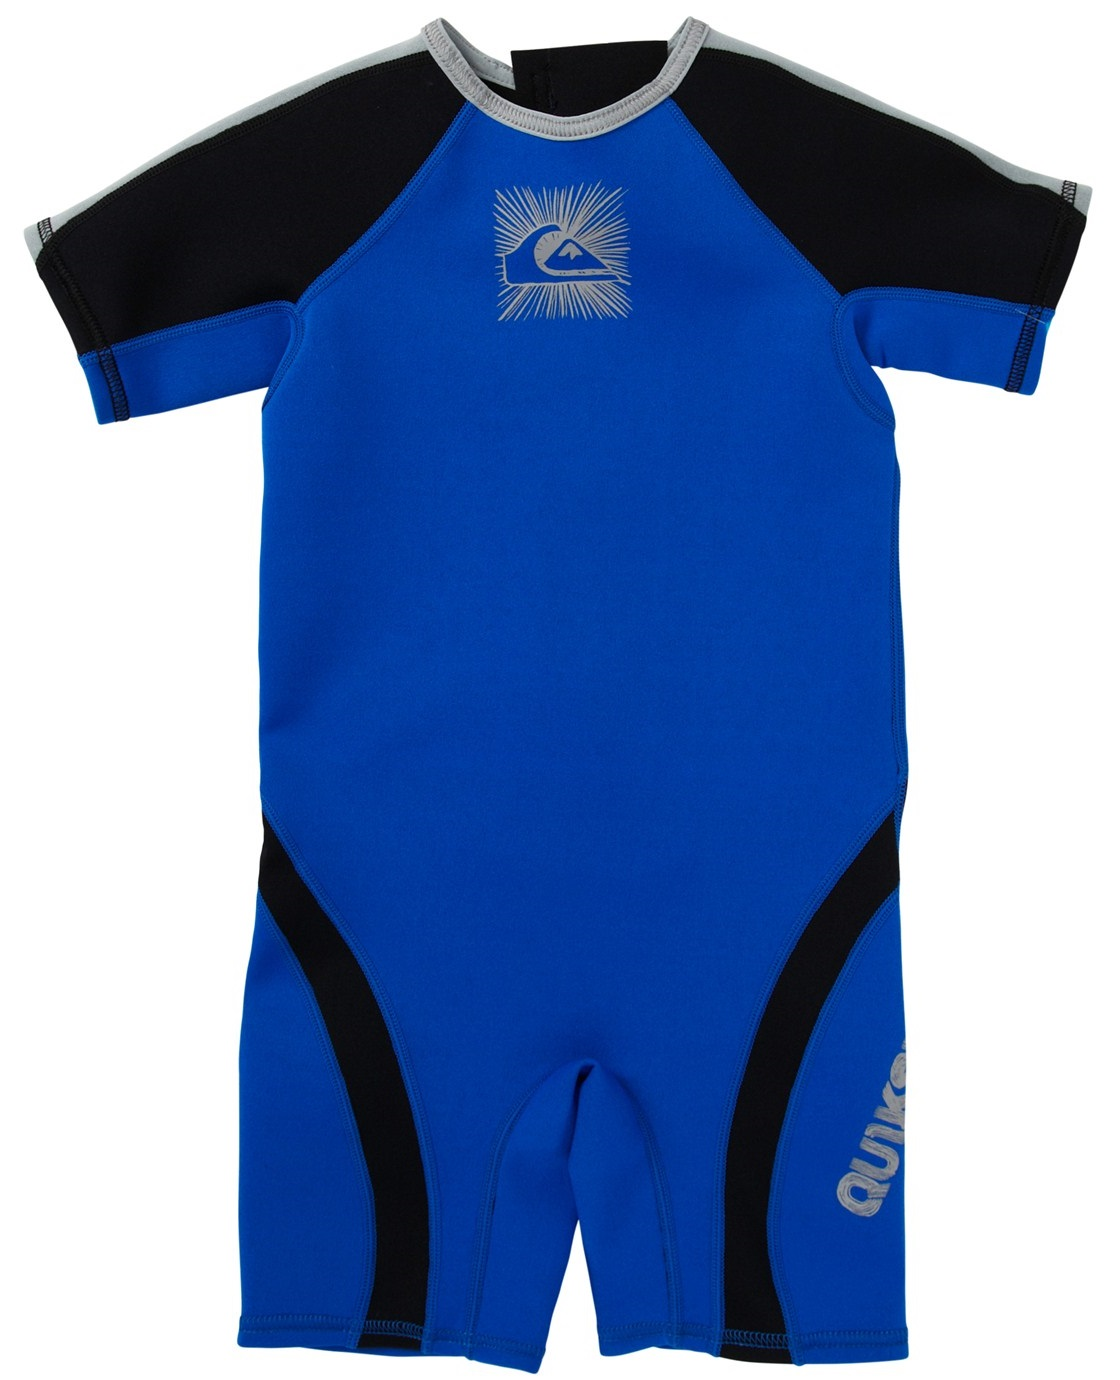 Quiksilver Syncro Springsuit Toddler Boys Wetsuit - Blue/Black